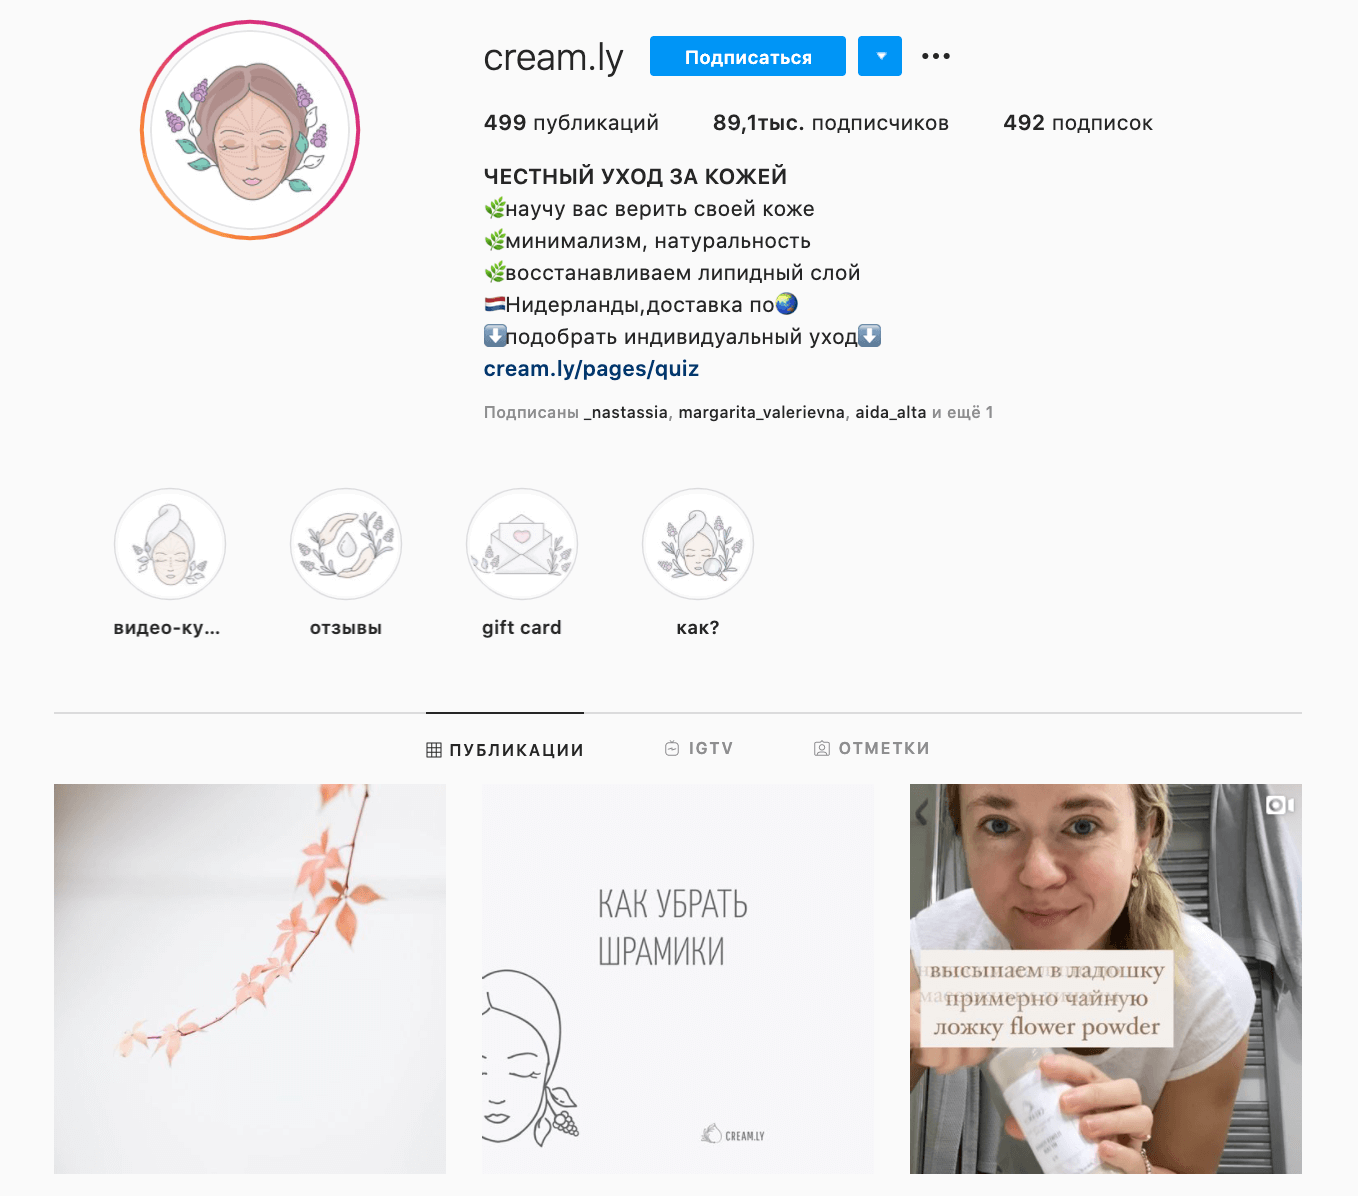 An example of how to make a cover for Topical on Instagram using @ cream.ly as an example